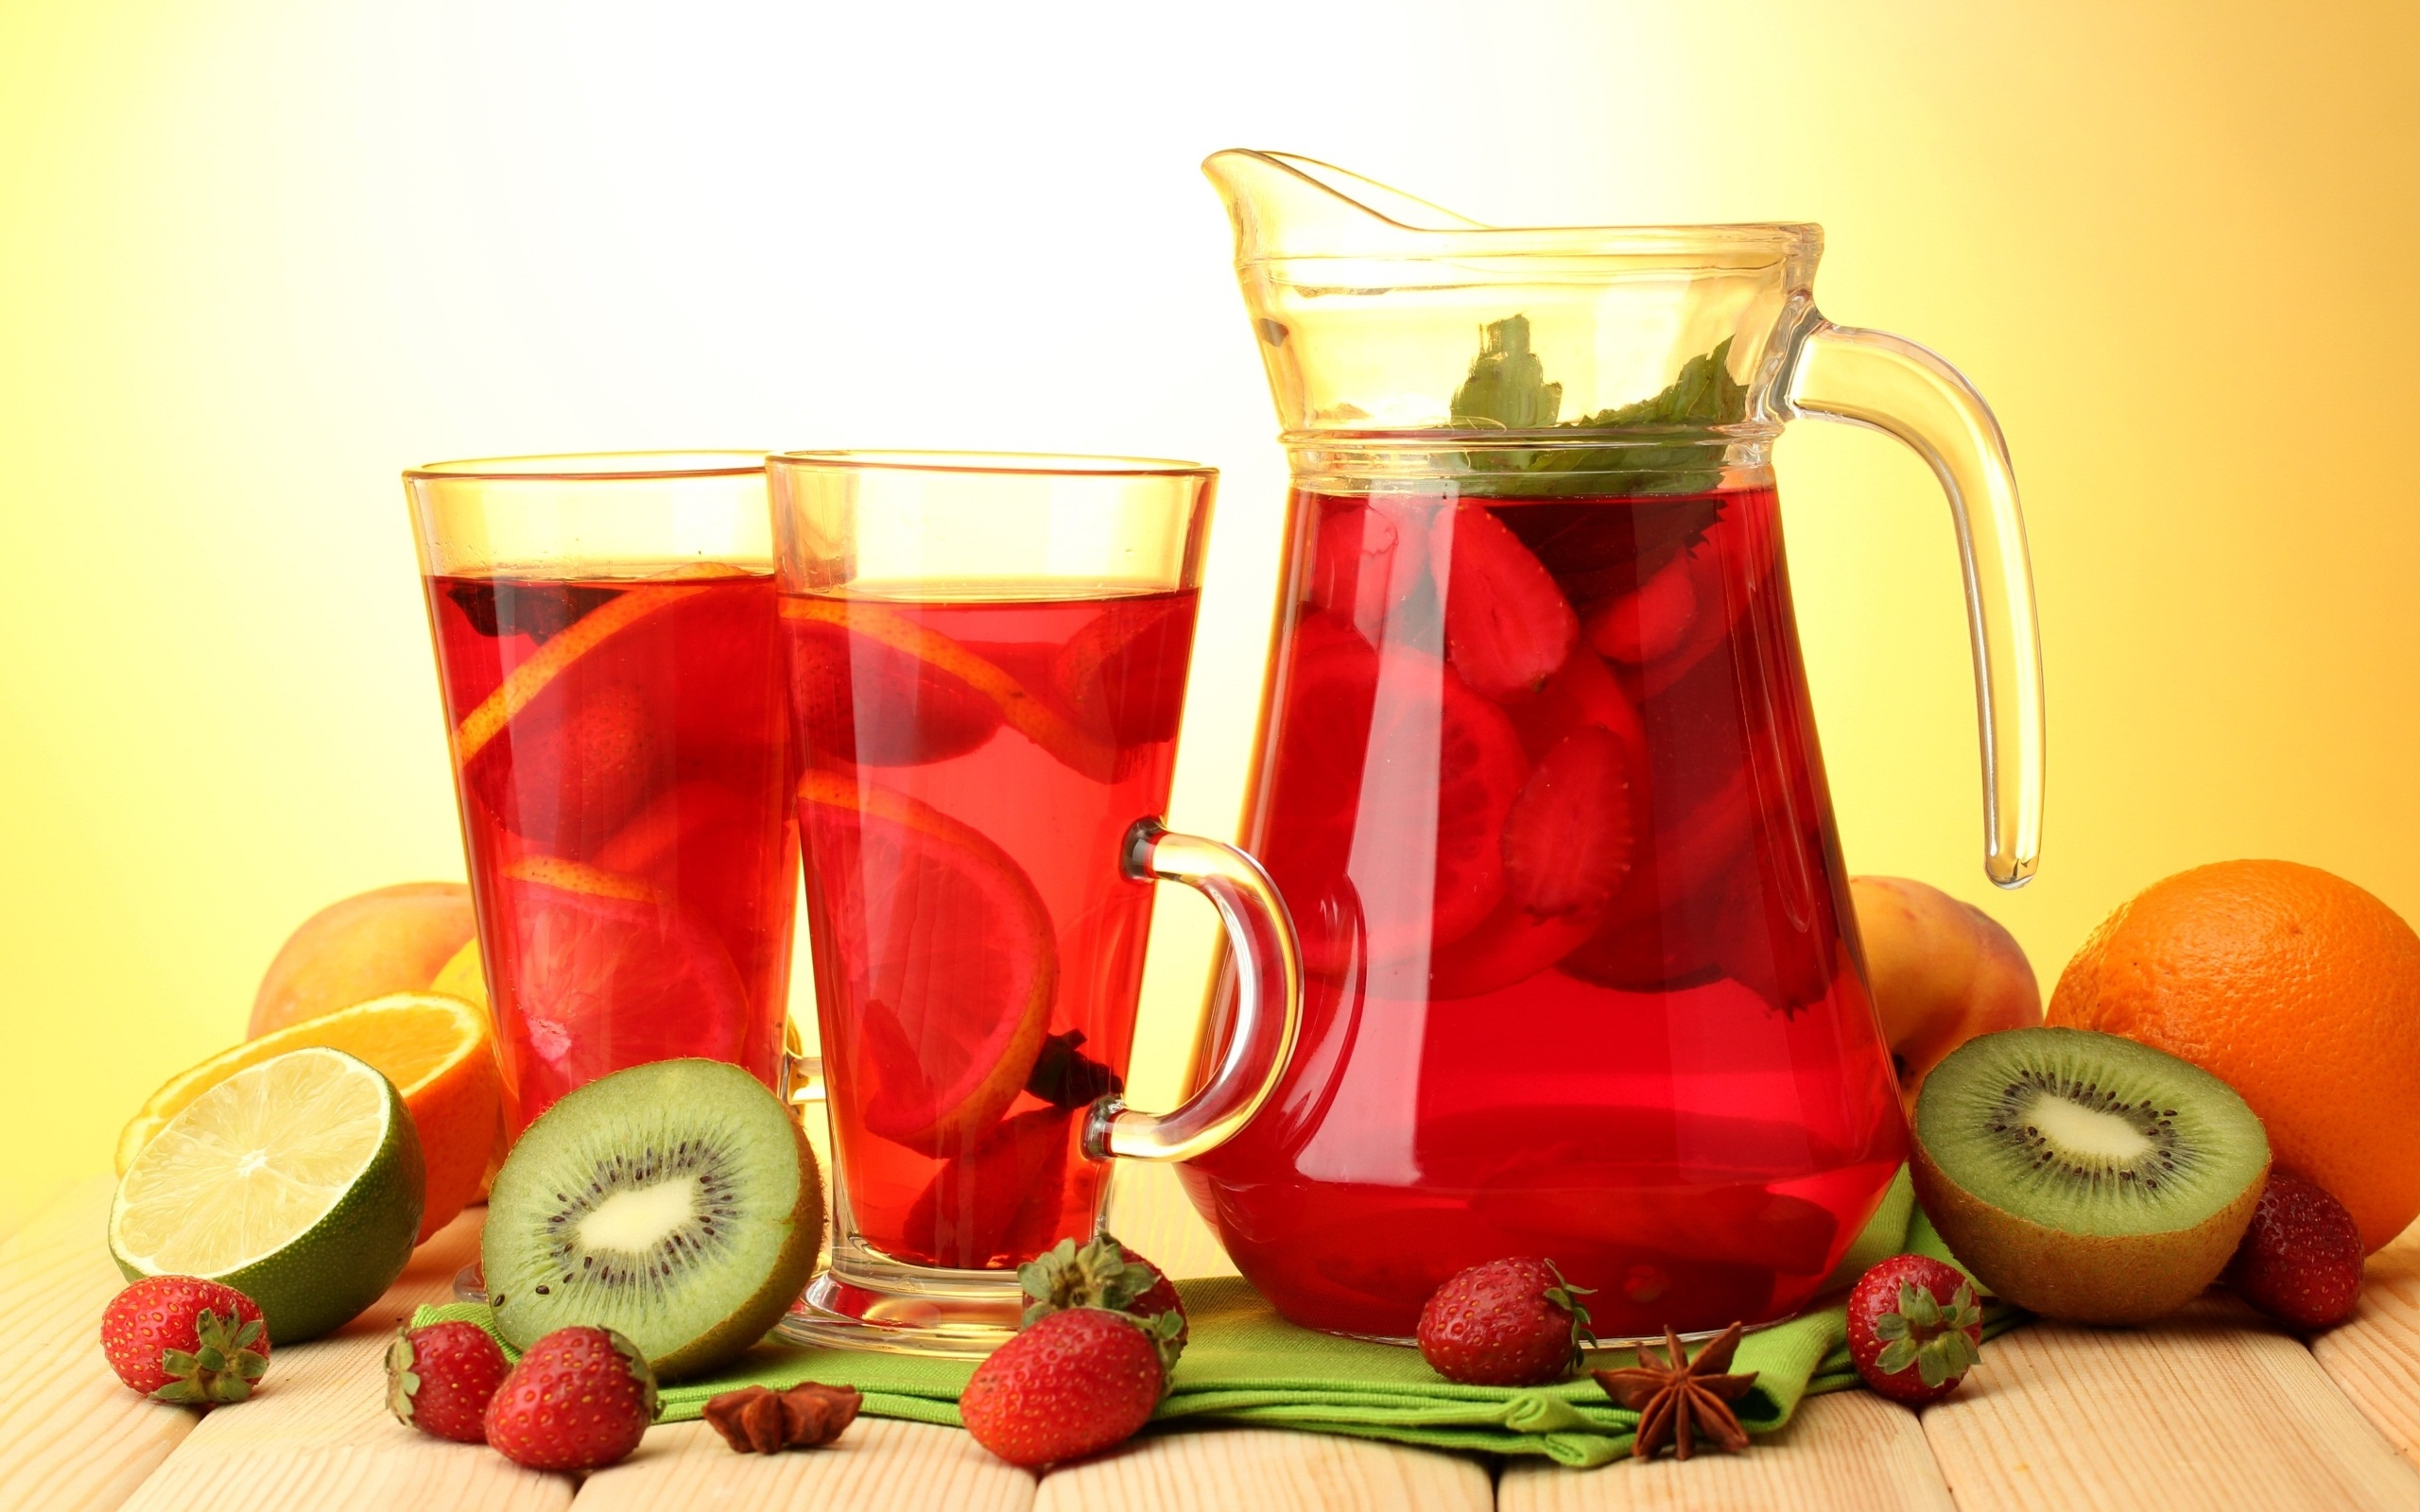 http://www.justjuice.org/2012/juicing-fresh-fruit-is-fresh-fruit-juice-good-or-bad-for-you/ | justjuice